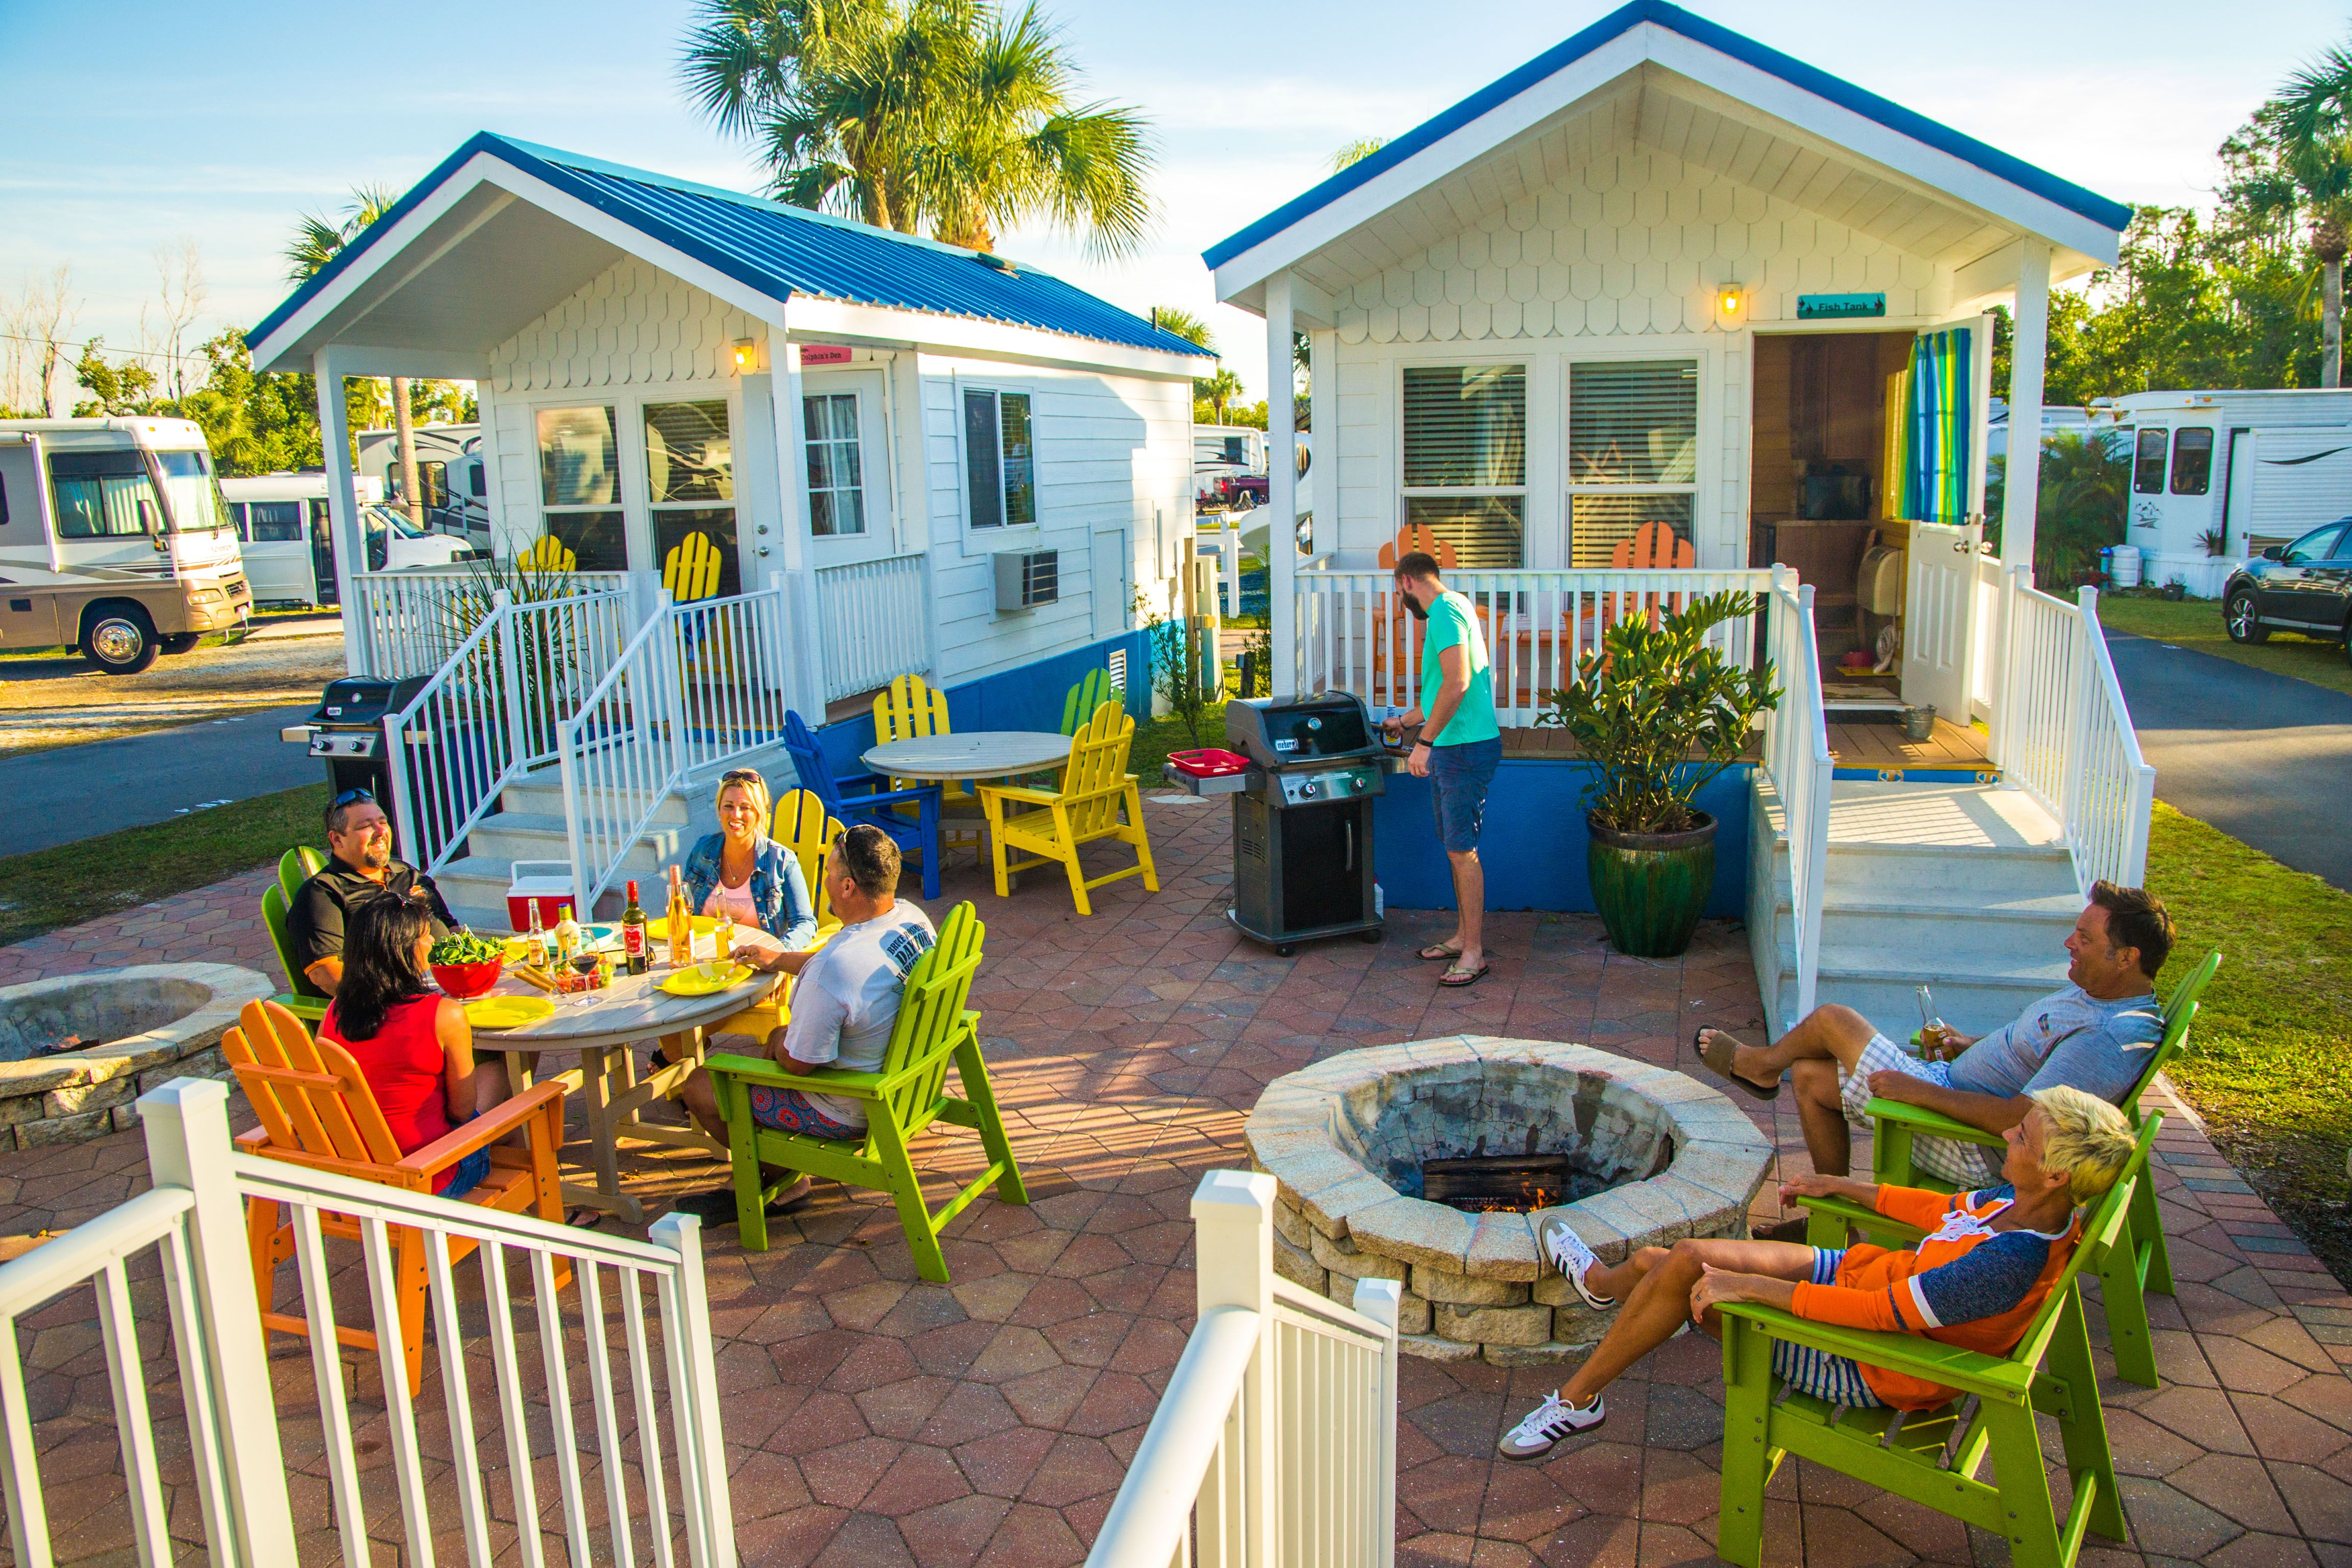 Deluxe Cabins That Offer Outdoor